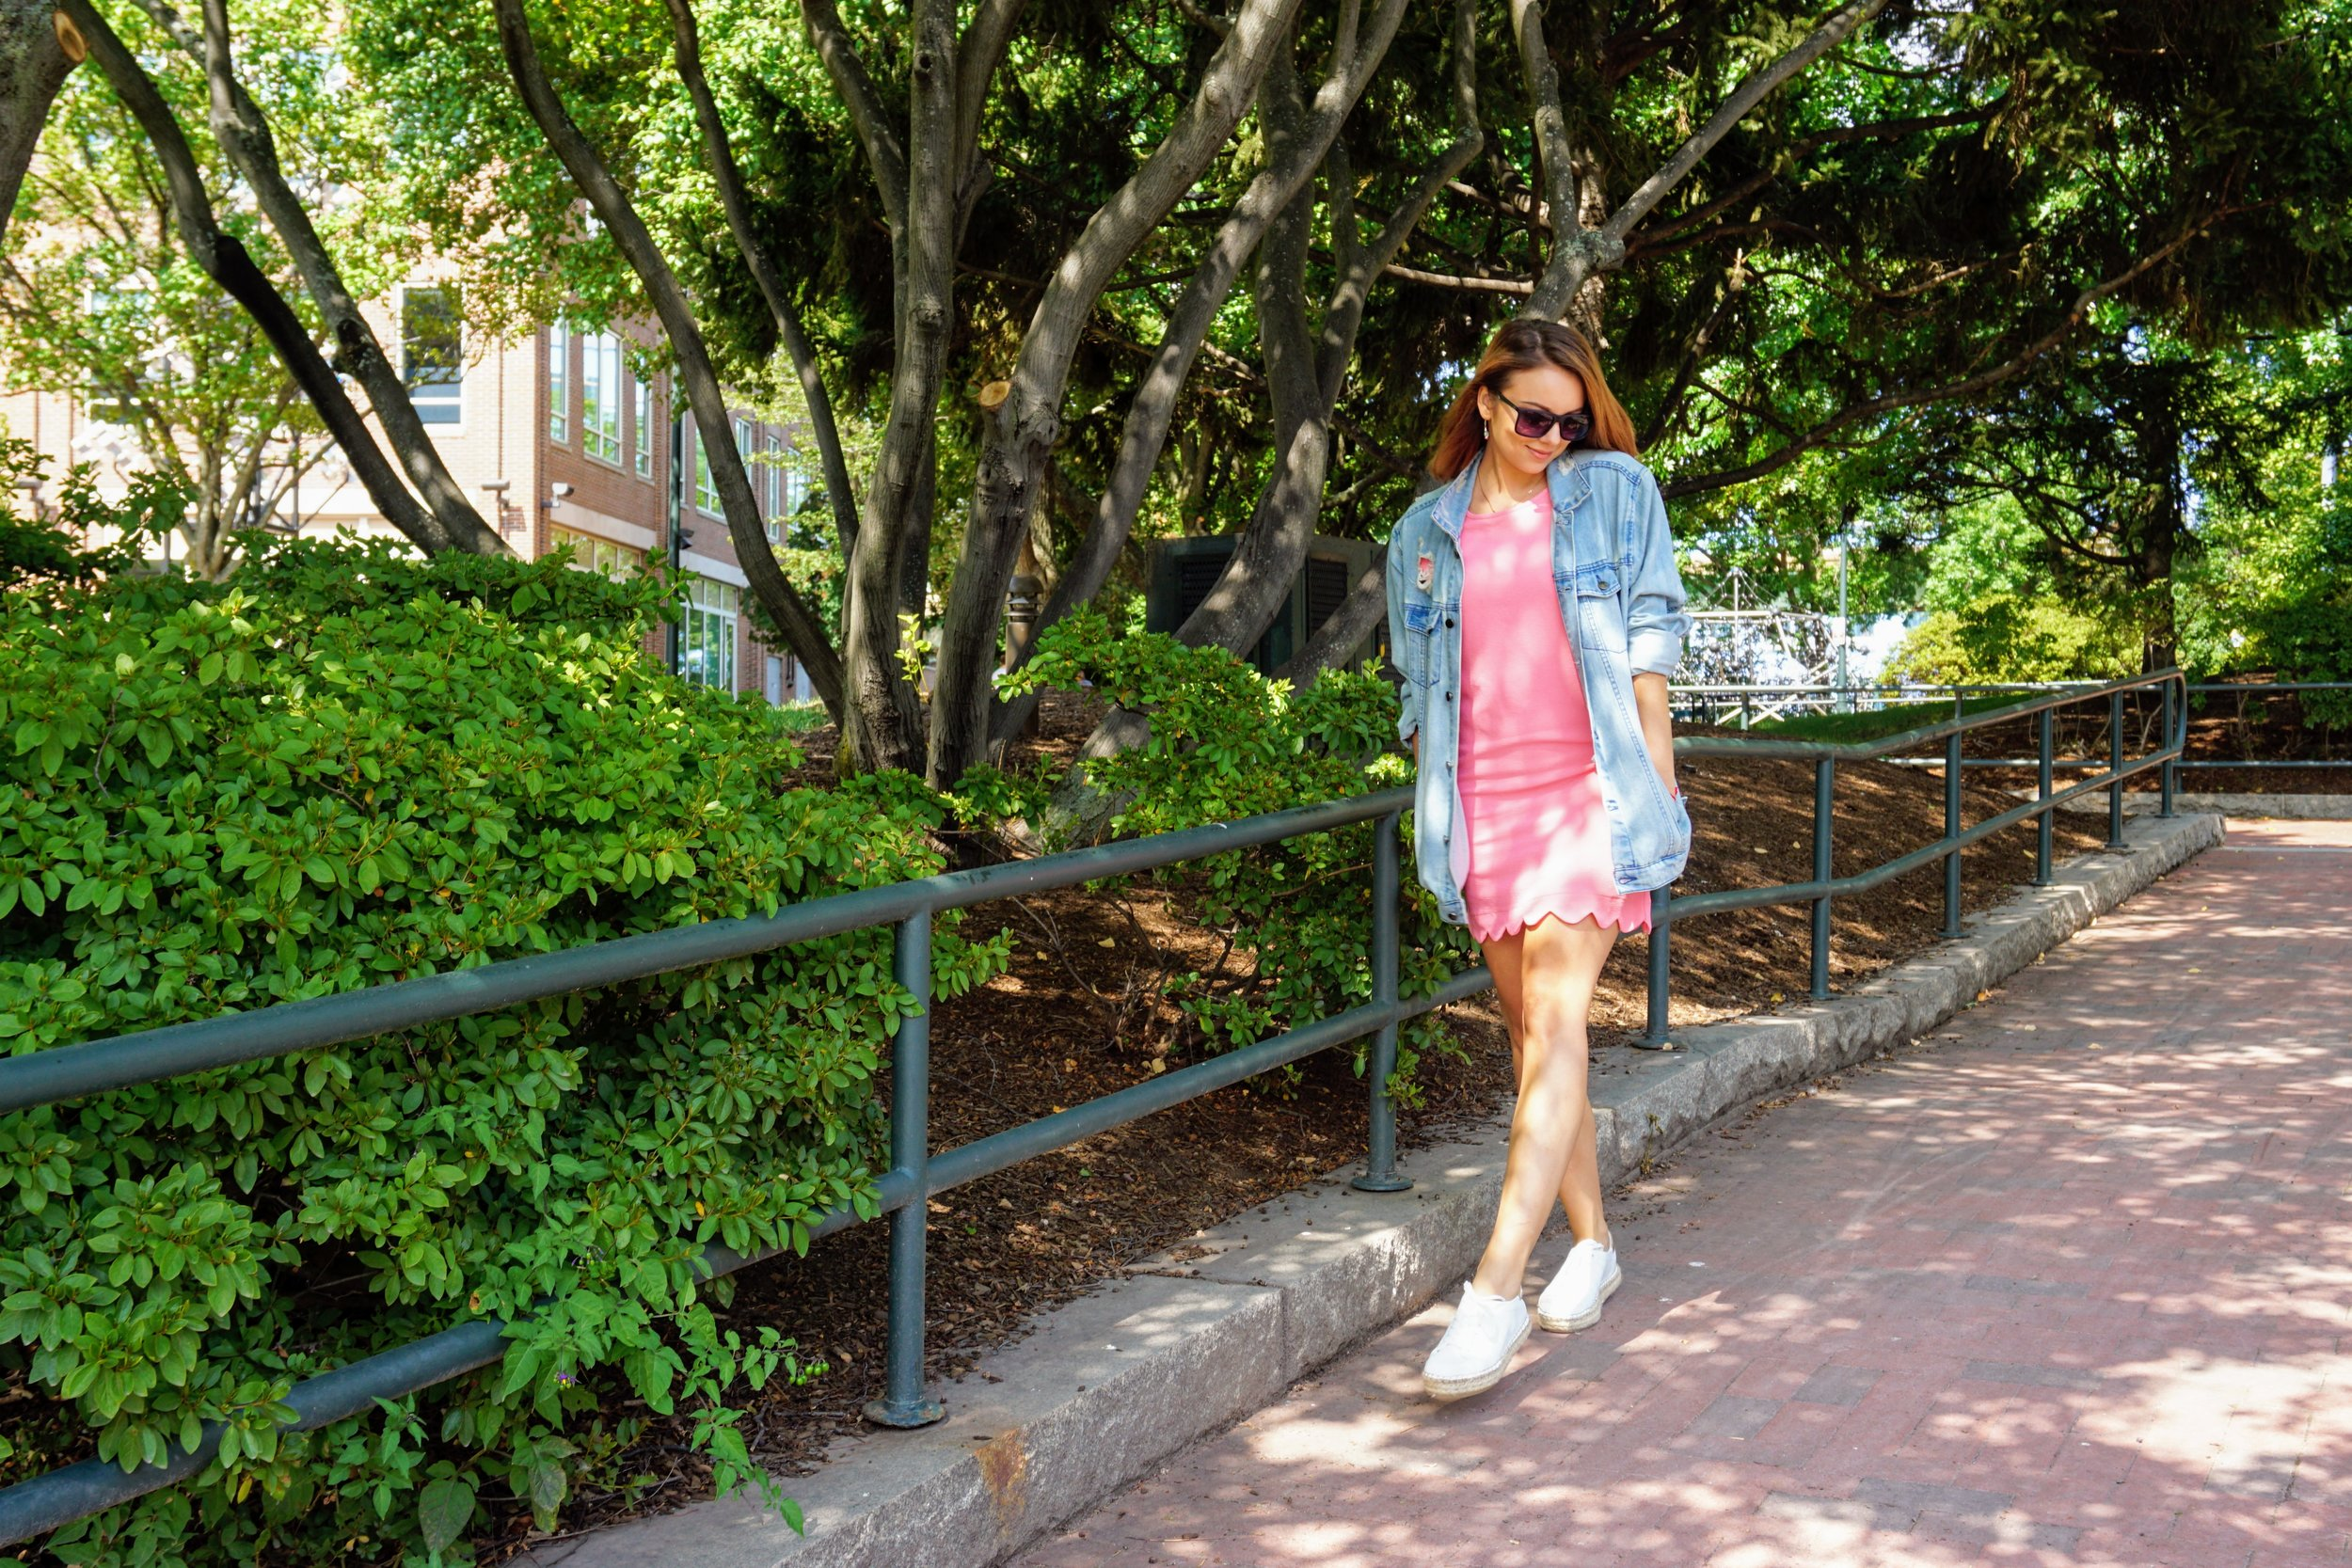 A style blogger wearing a casual look: pink dress, oversized denim jacket, and white sneakers.